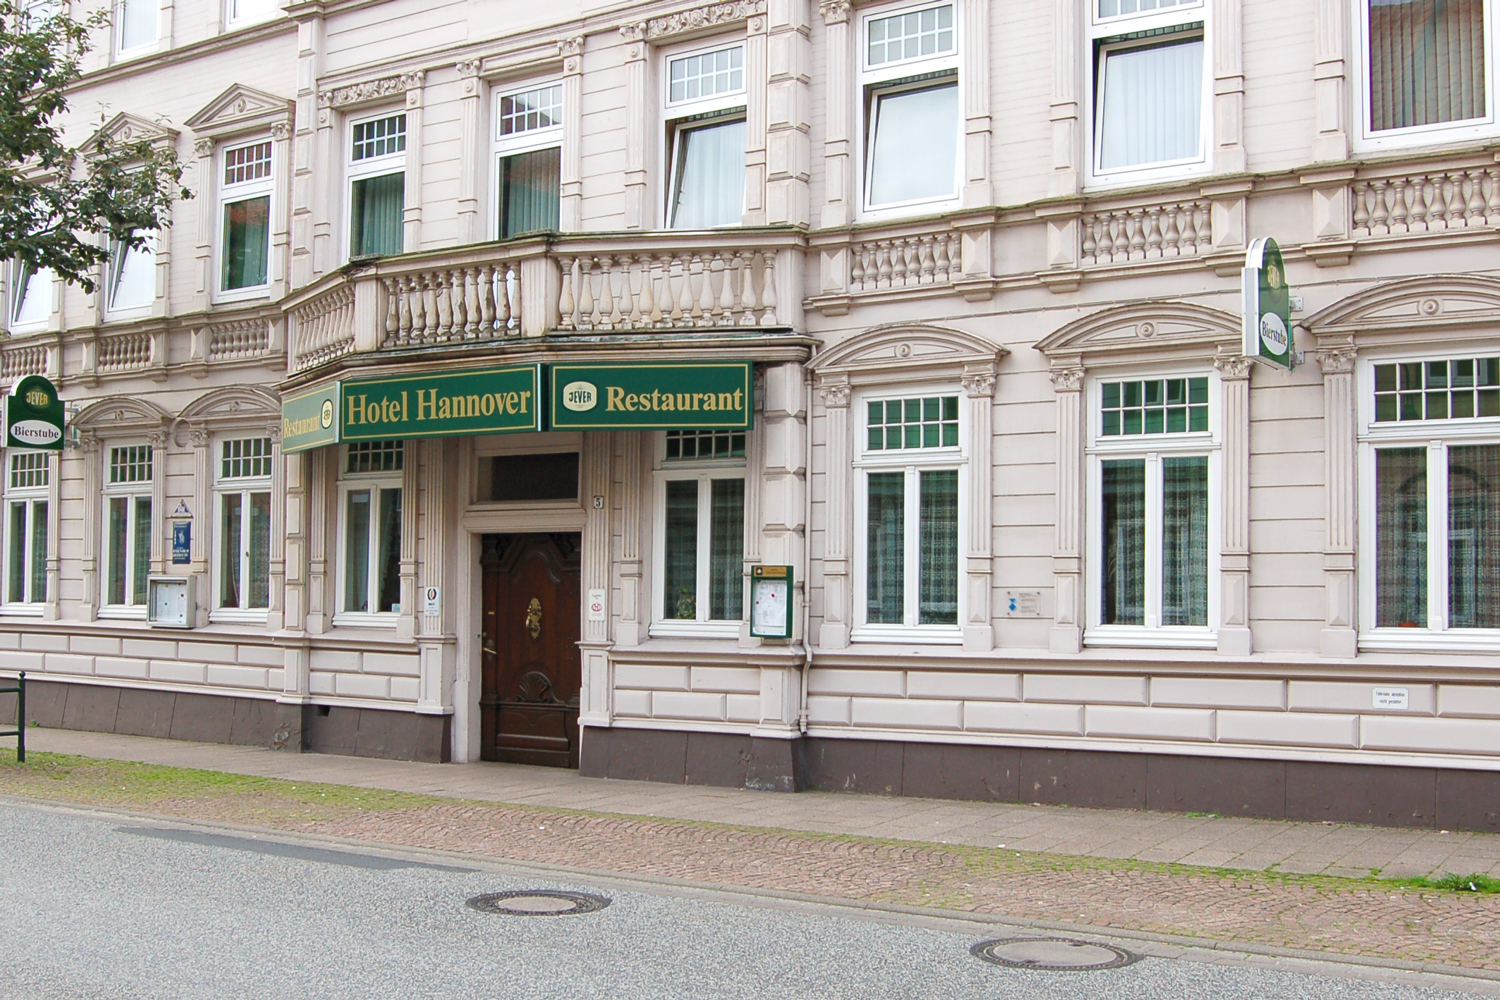 Hotel Hannover in Walsrode